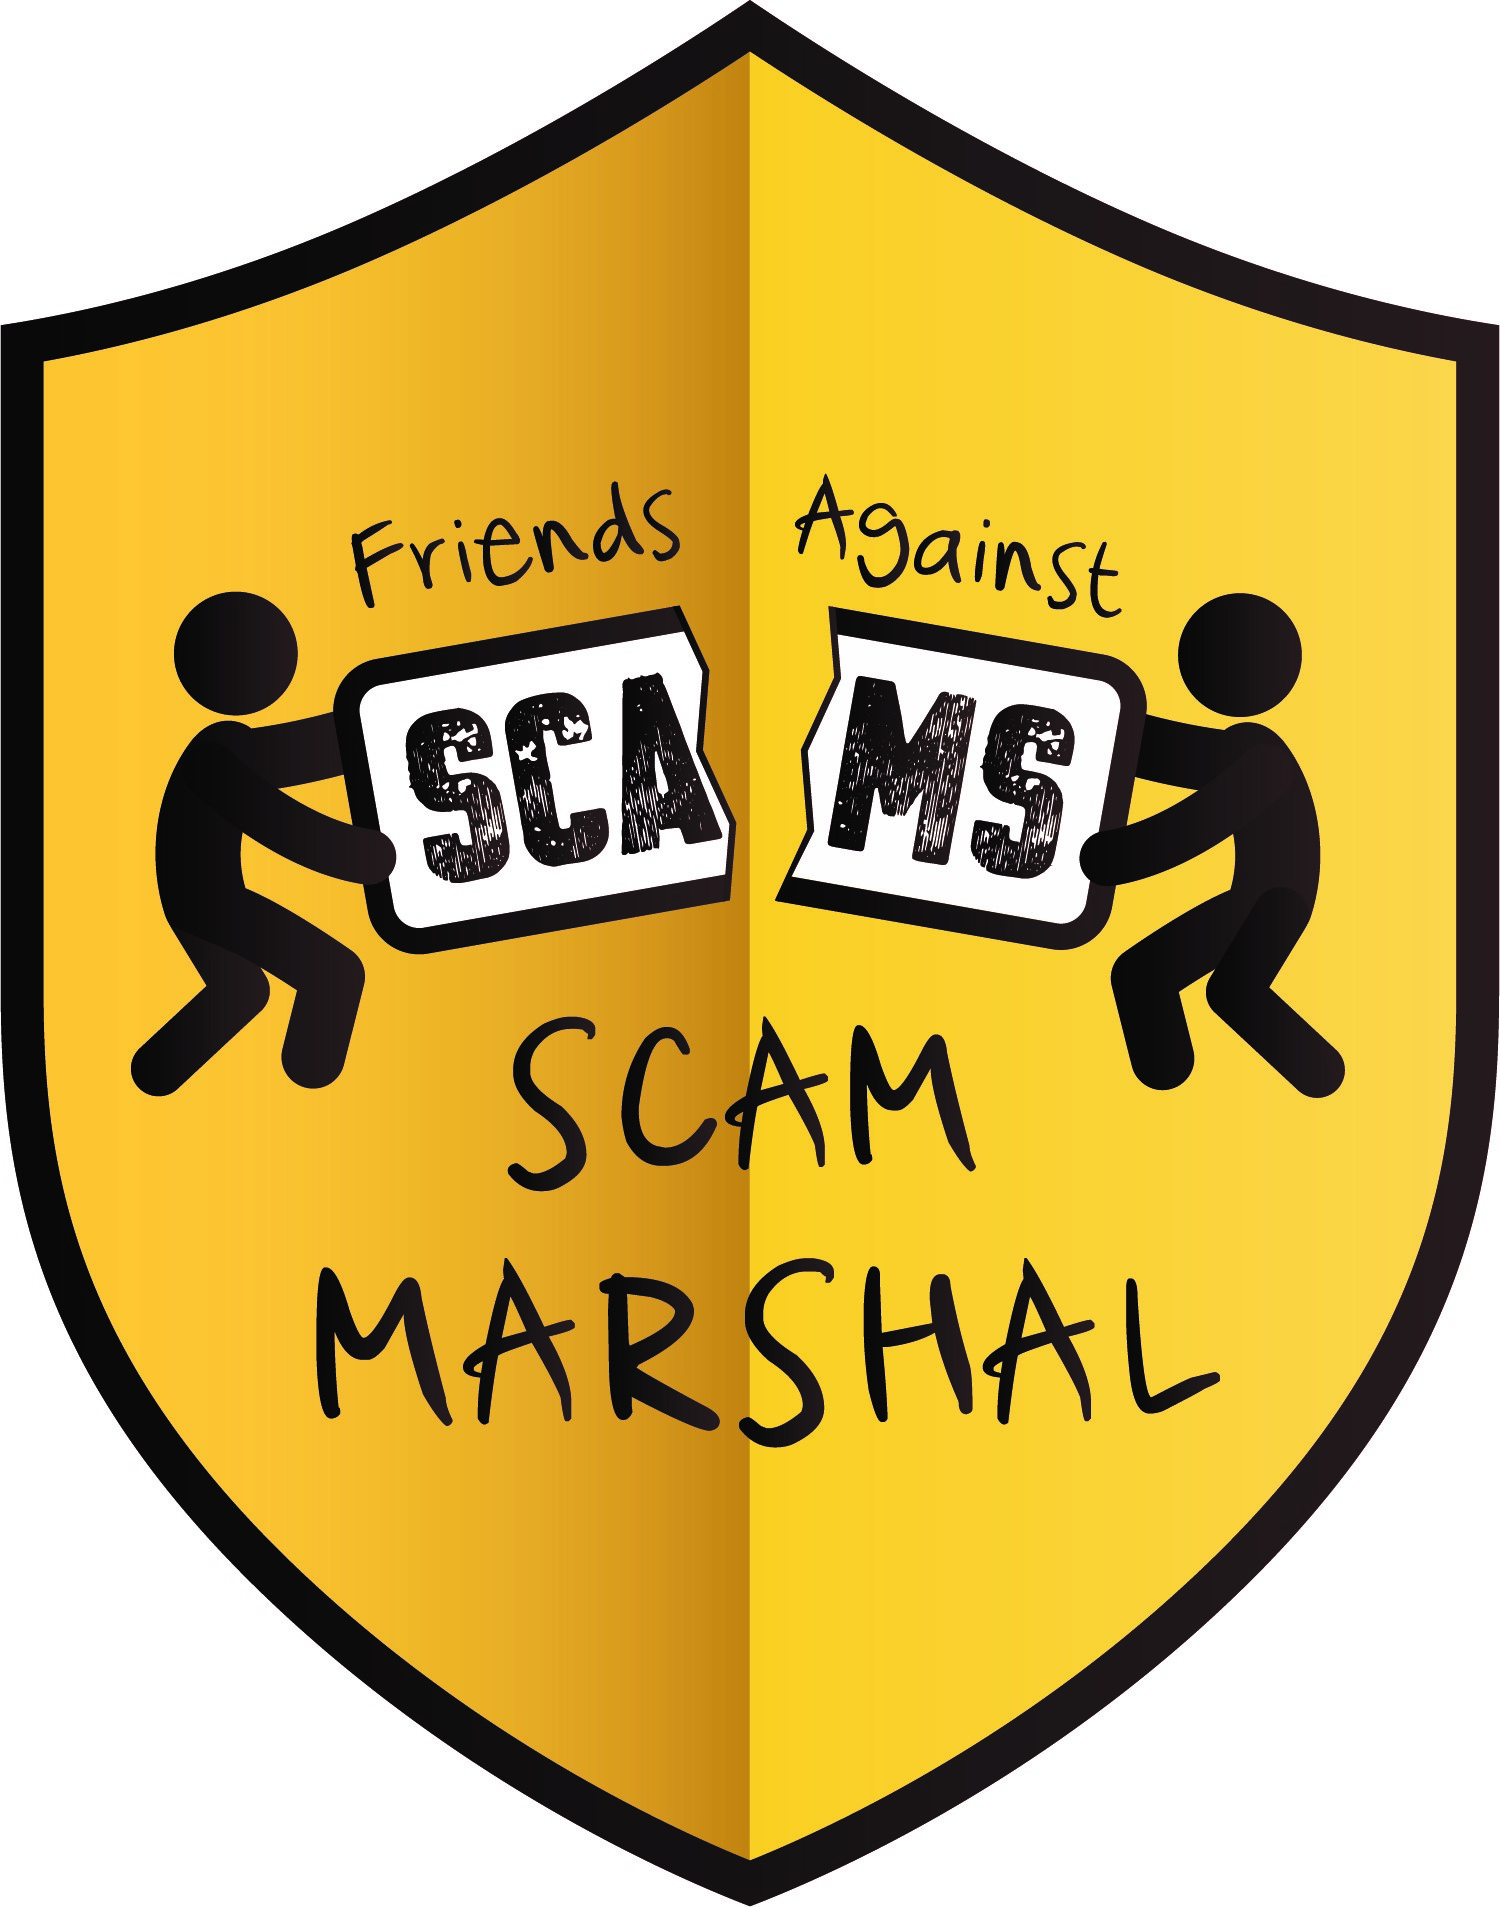 scam marshal 2